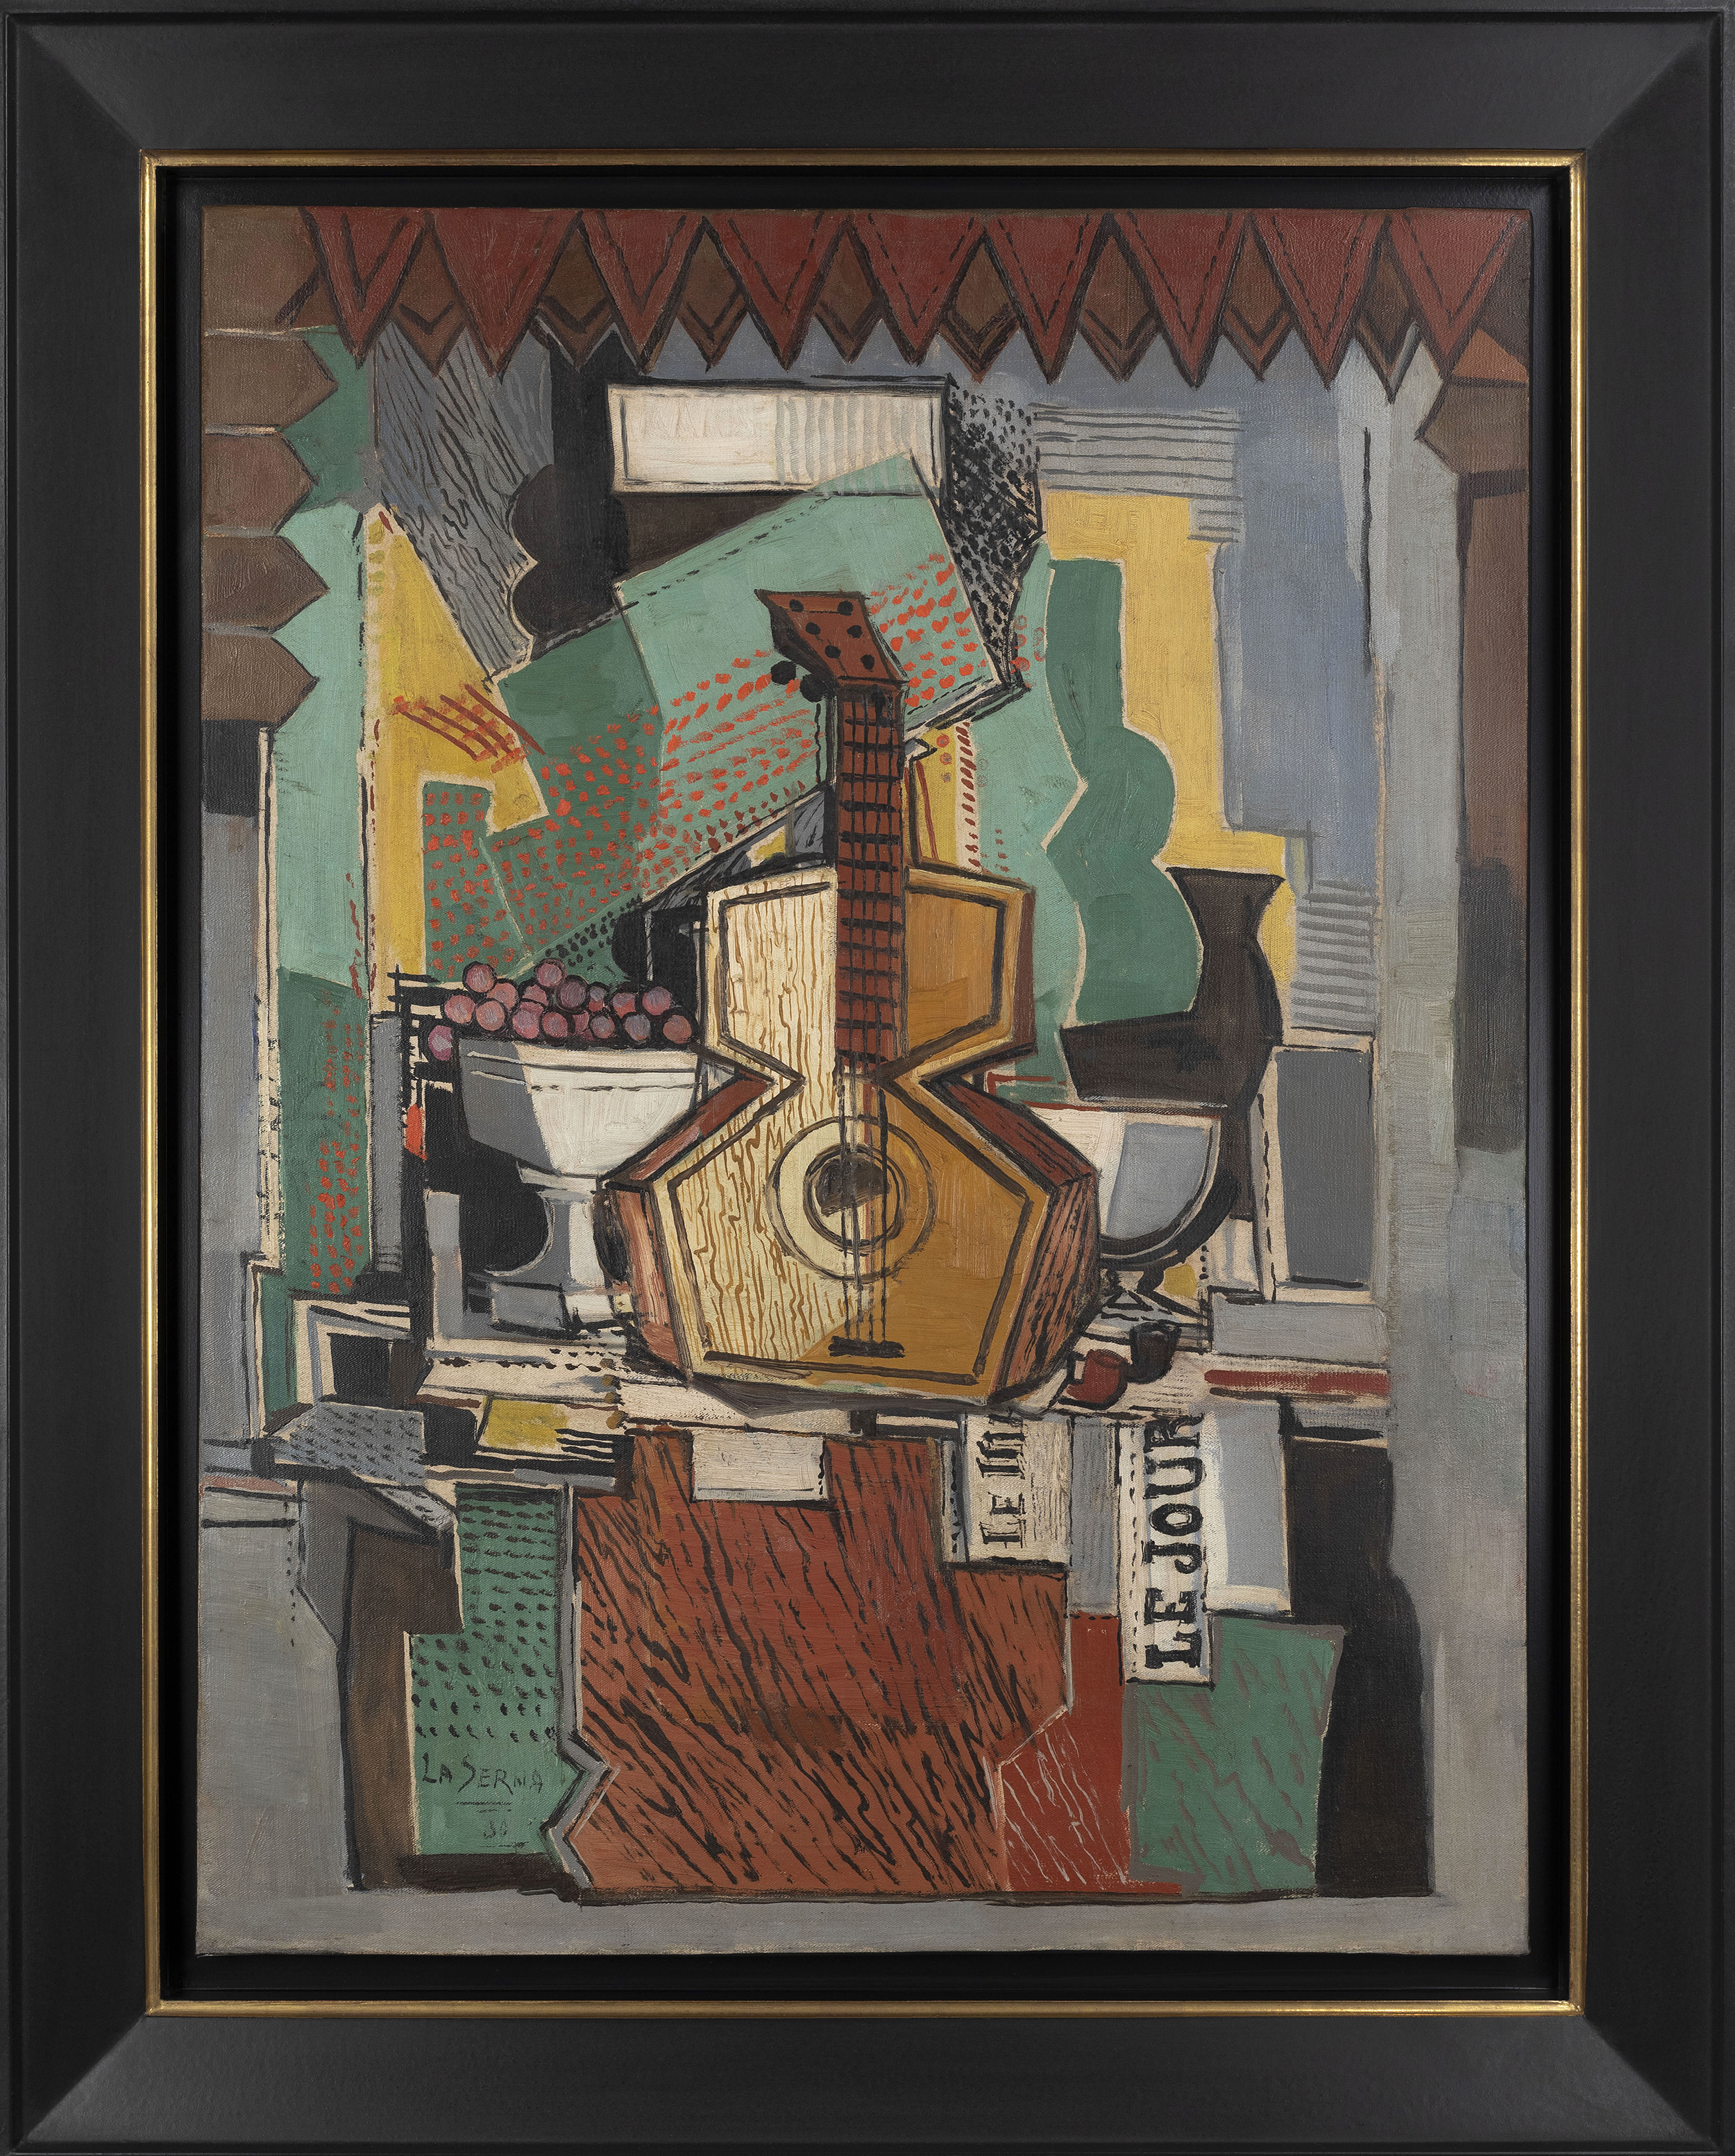 Still Life with Guitar  , Oil on canvas, 1930, 31 1/2 x 23 5/8 inches